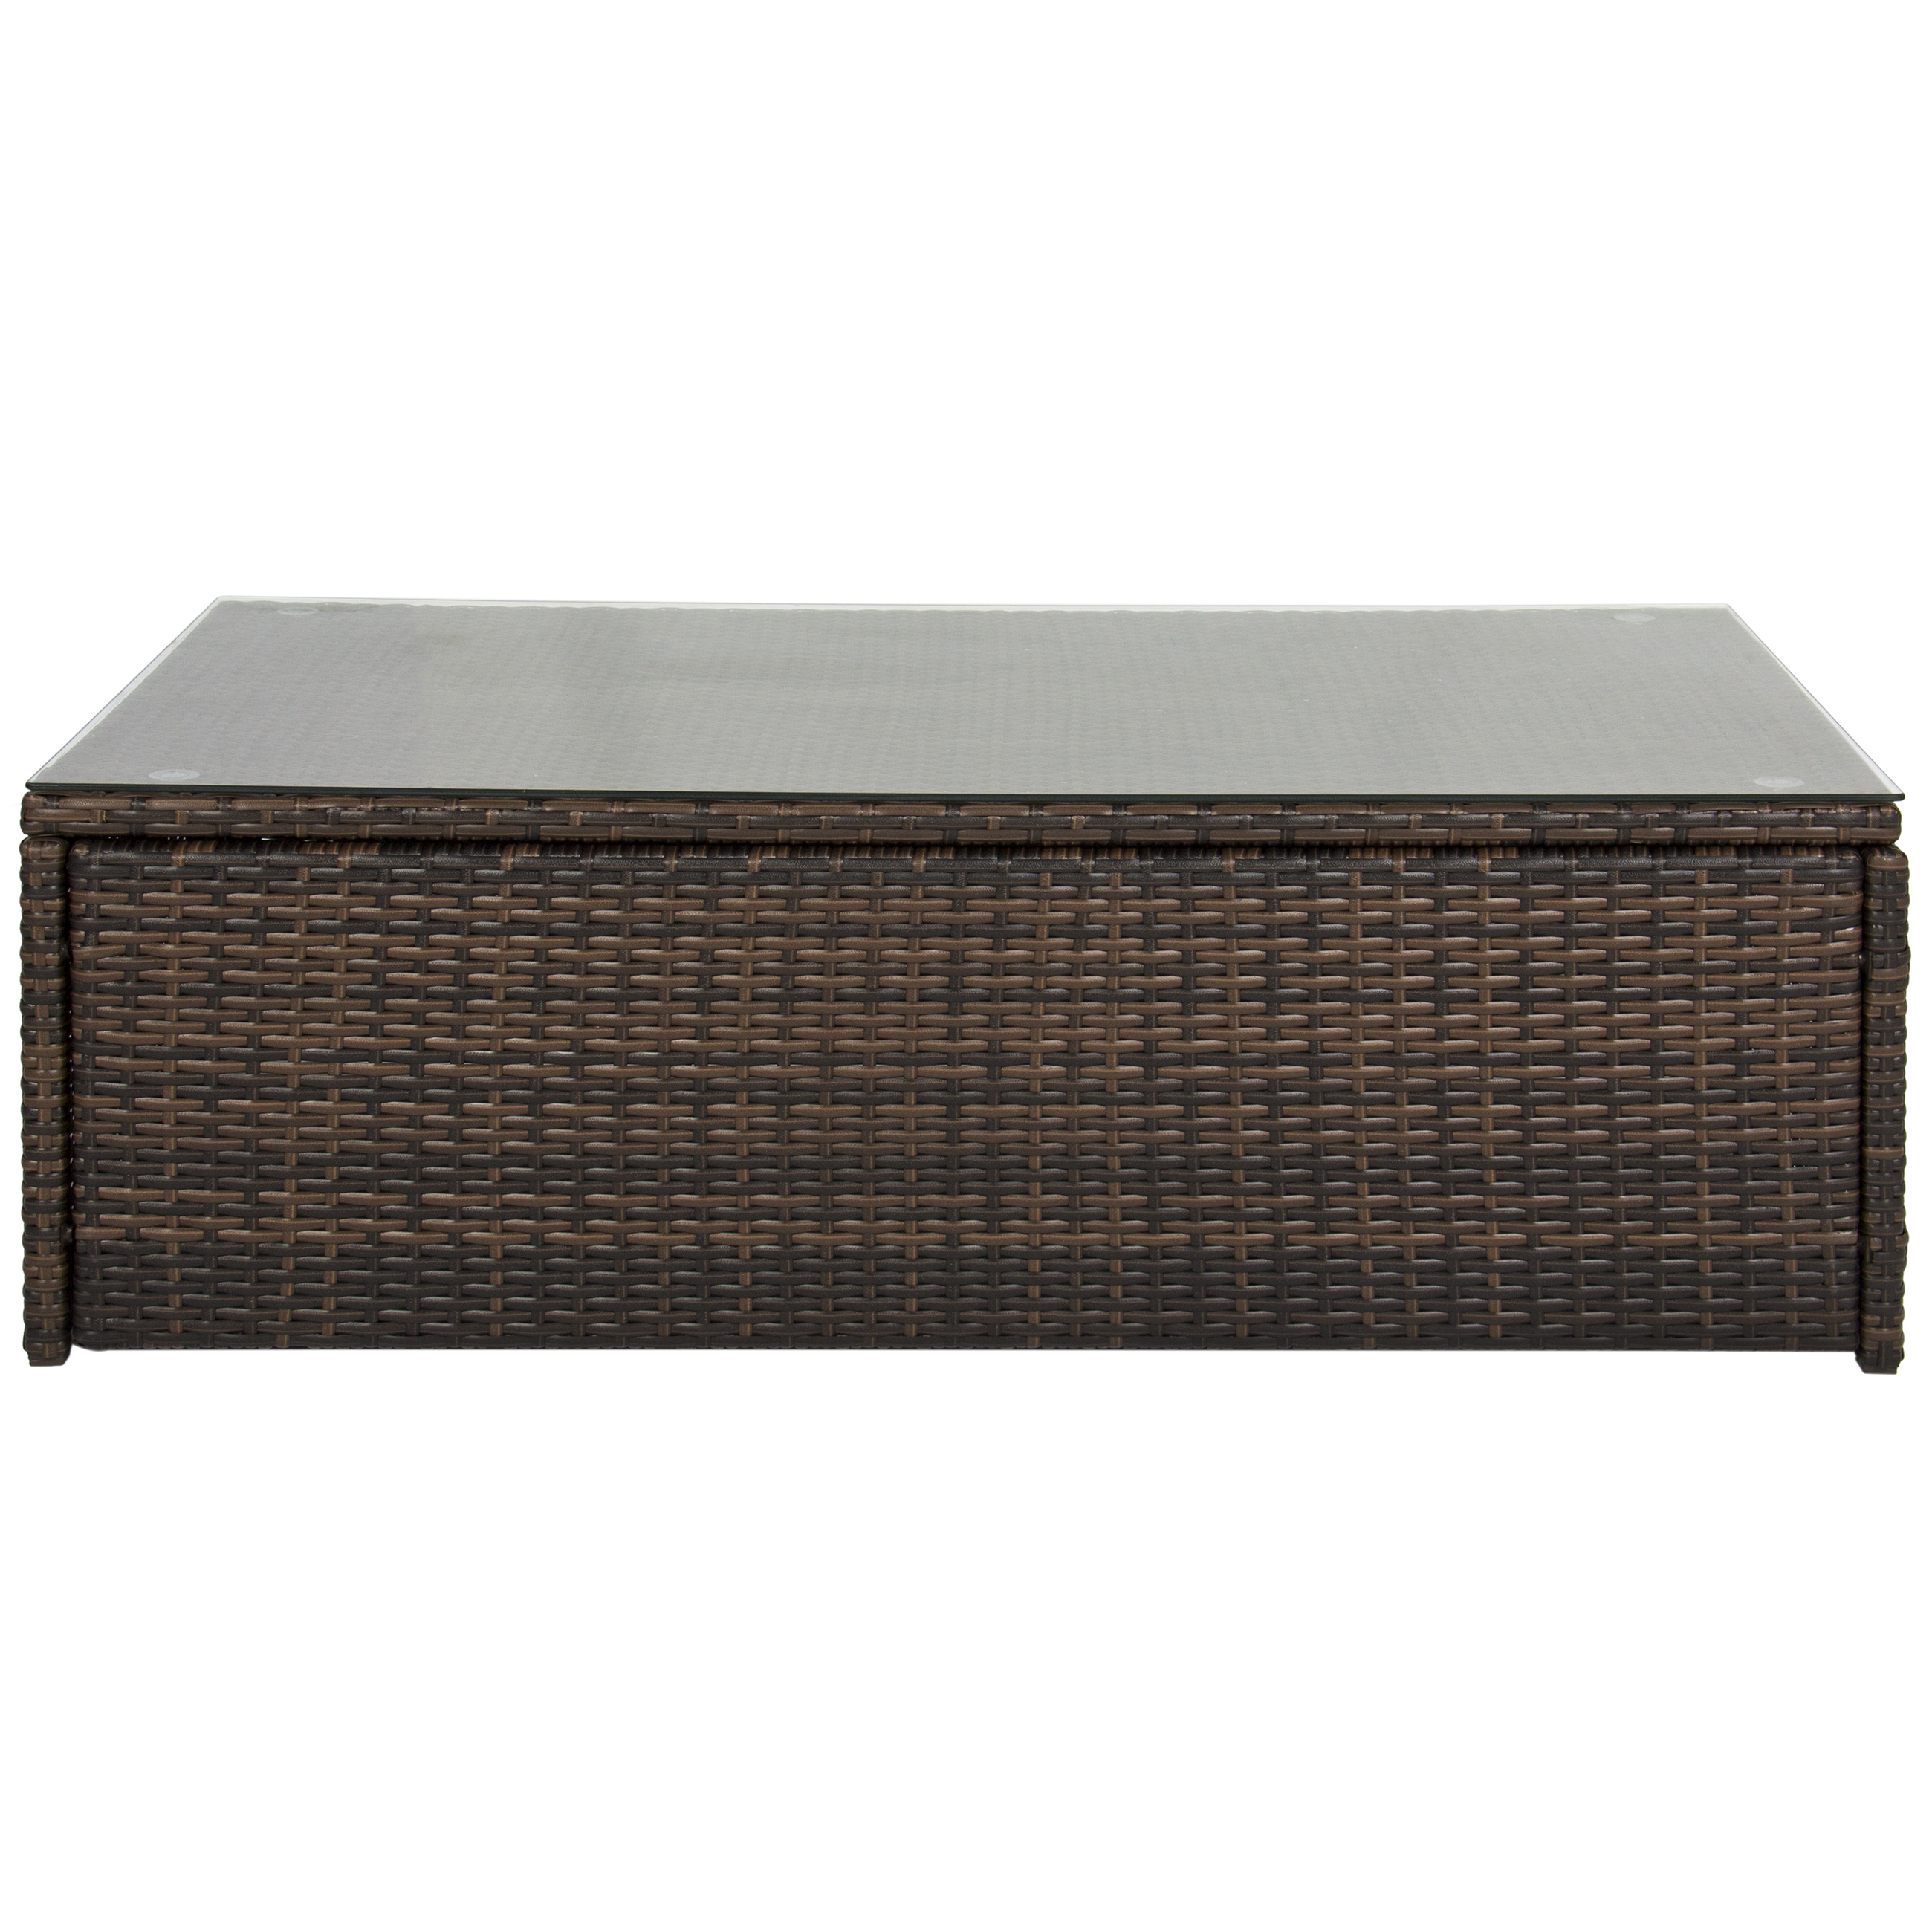 Best Choice Products Wicker Coffee Table W/ Tempered Glass Top   Brown